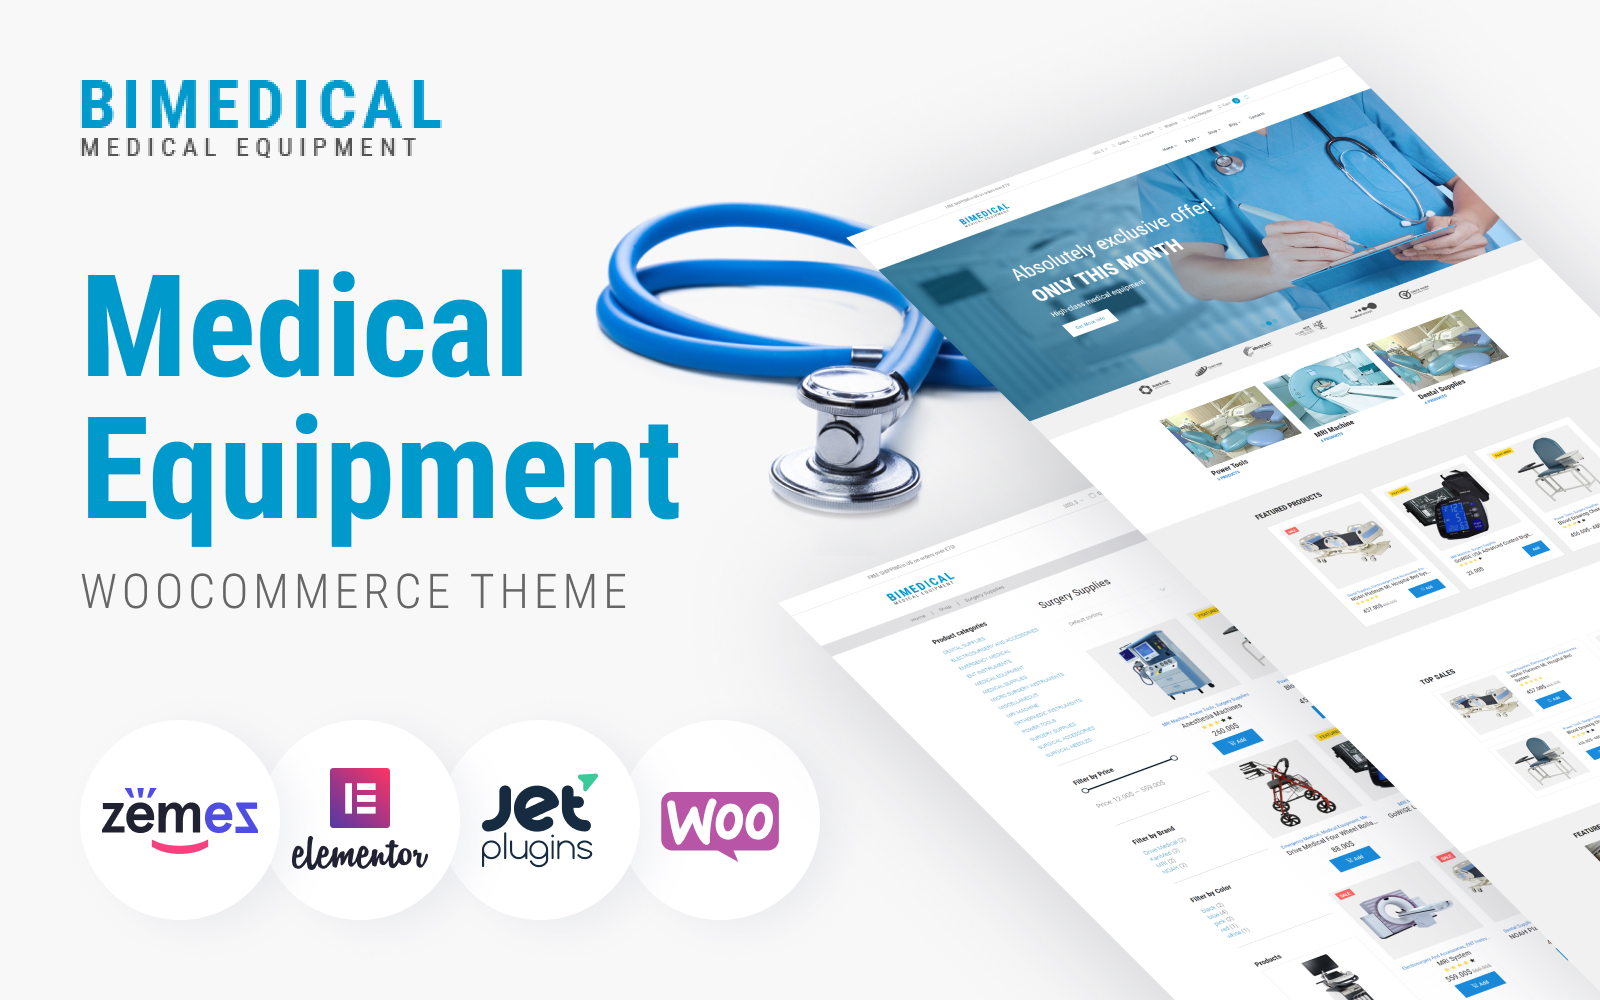 """Bimedical- Medical Equipment Responsive"" 响应式WooCommerce模板 #64363"